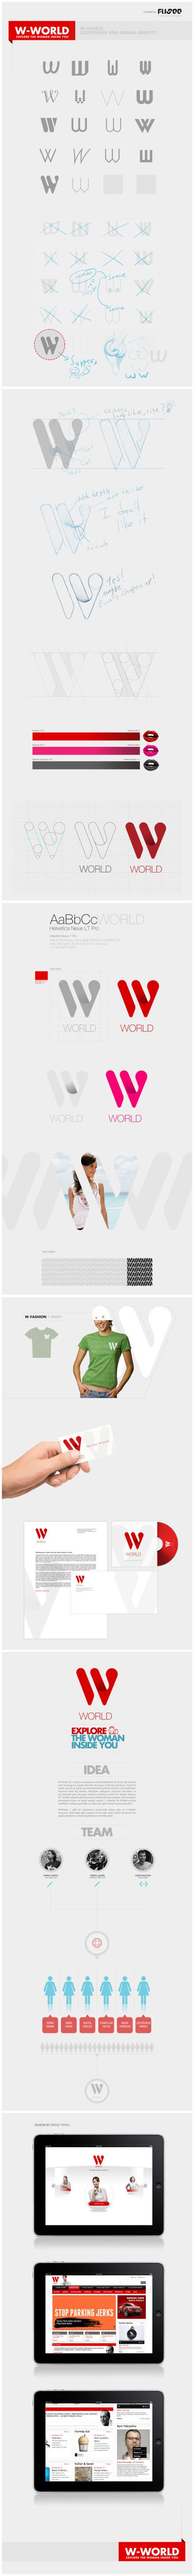 W-WORLD VI设计 #branding #graphic #design